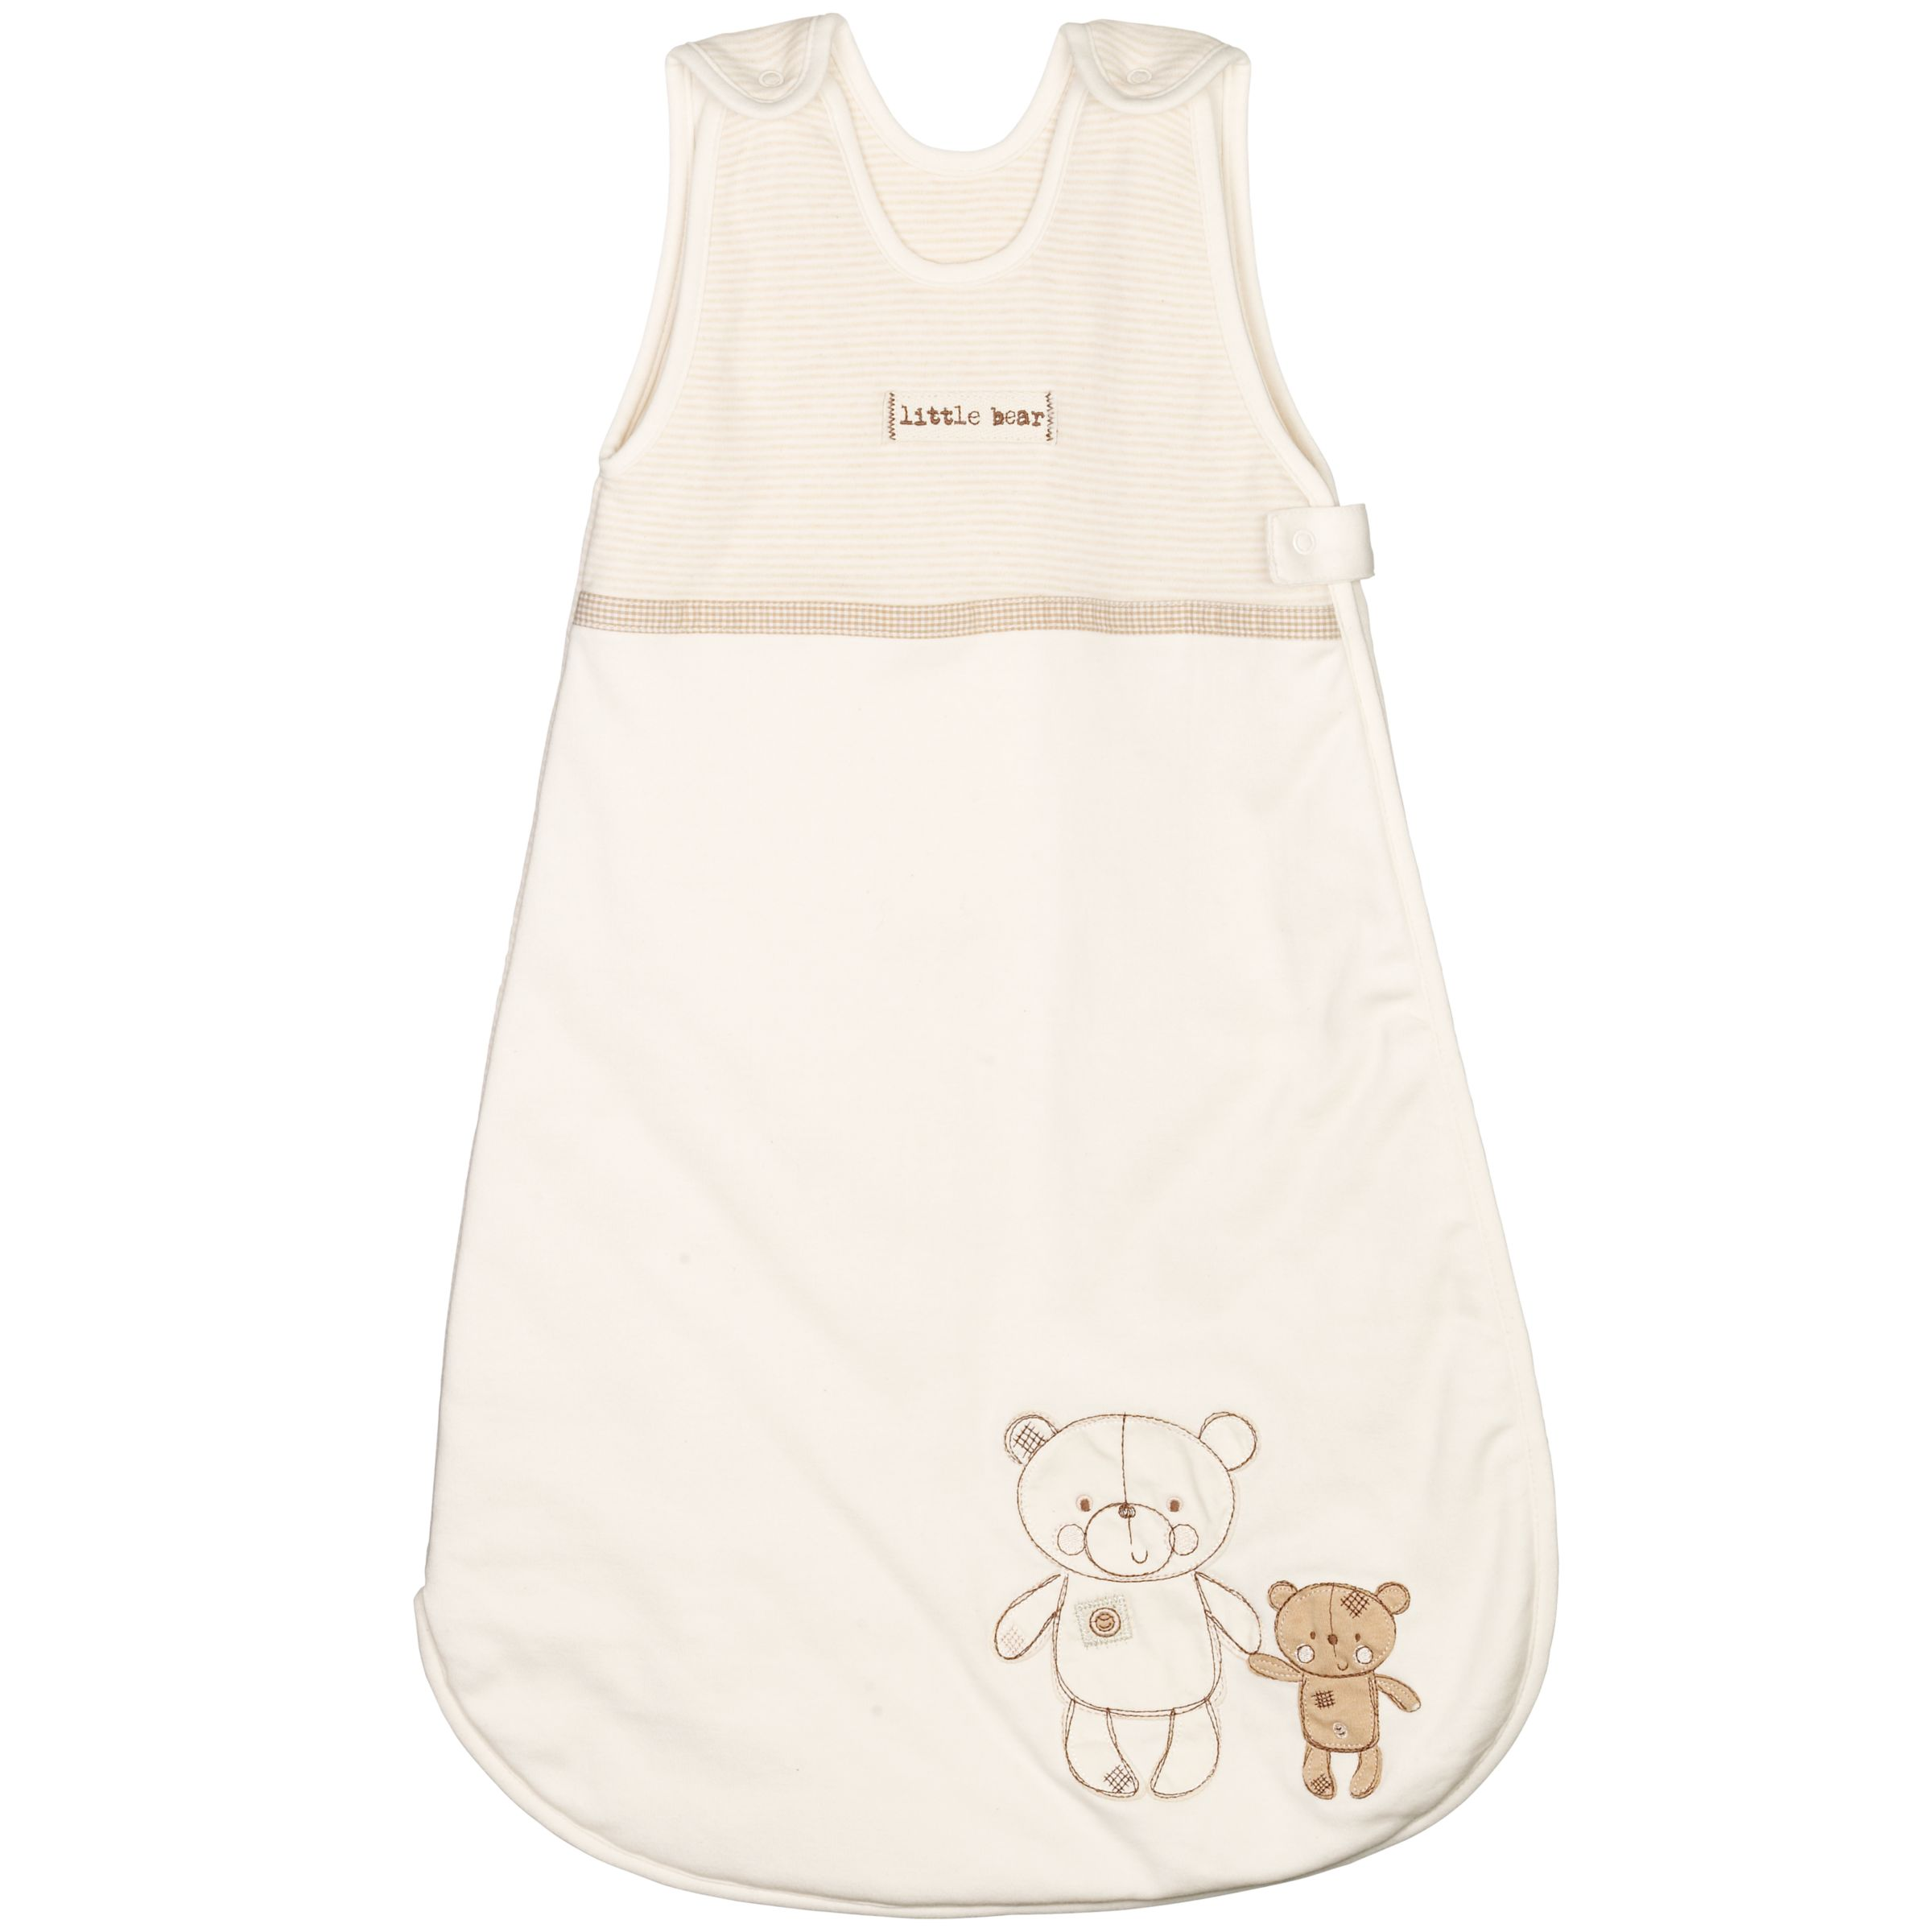 John Lewis Organic Teddies Sleeping Bag, 2.5 Tog